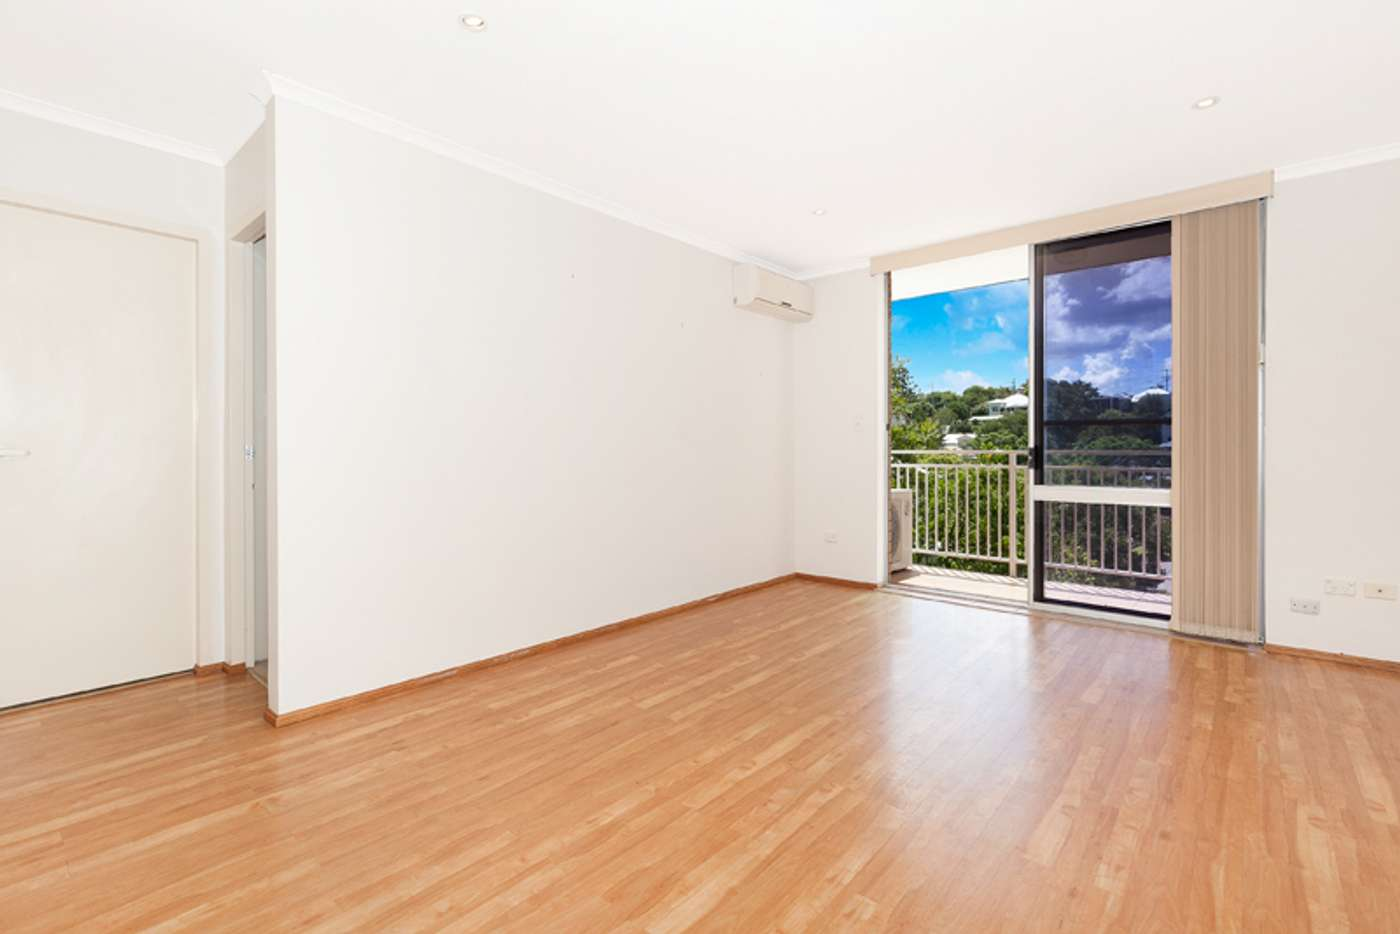 Main view of Homely apartment listing, 5/36 Lemnos Street, Red Hill QLD 4059